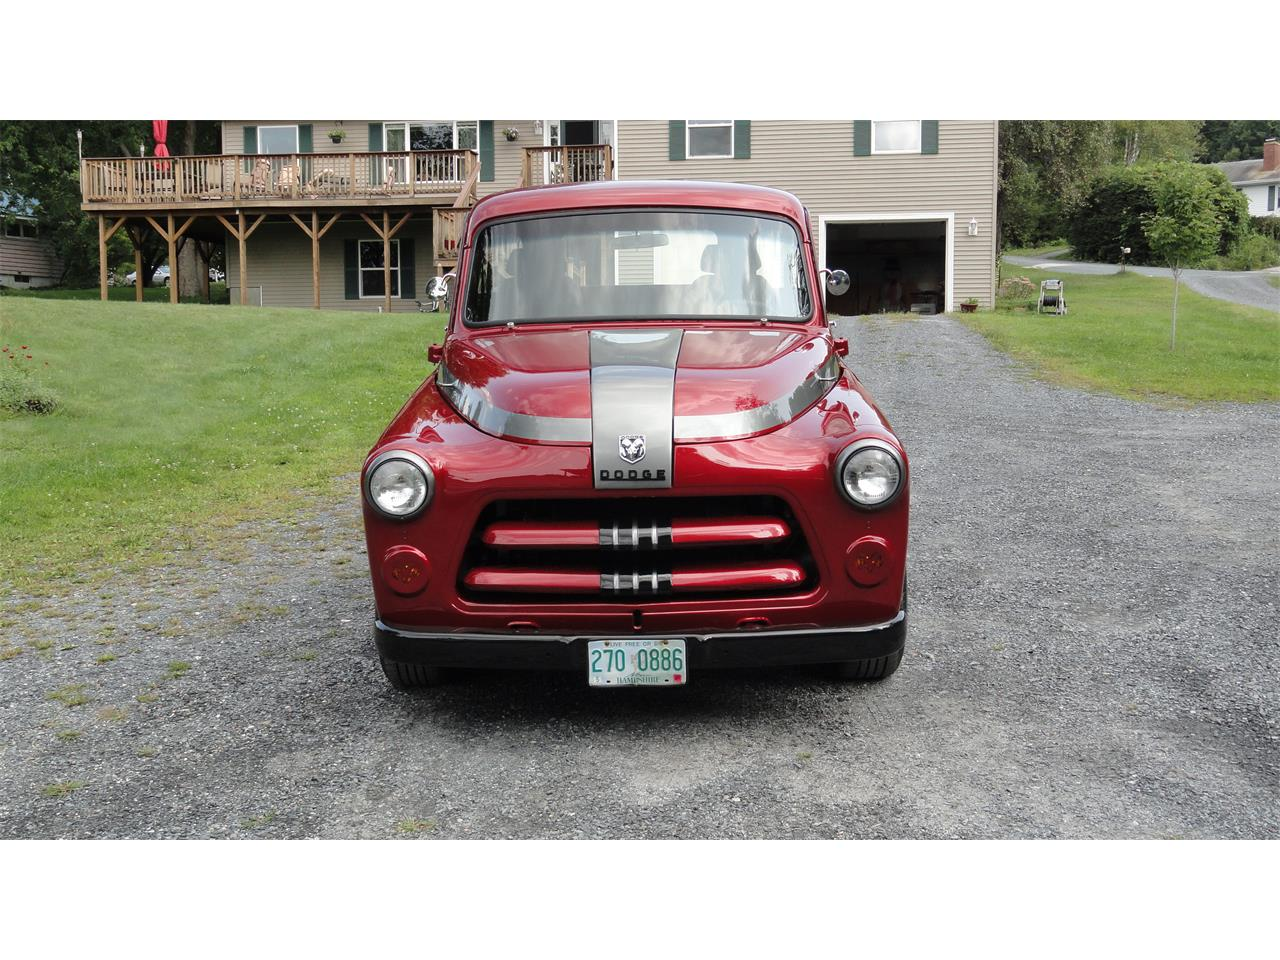 Large Picture of '54 Dodge Pickup - $32,800.00 Offered by a Private Seller - MH4U